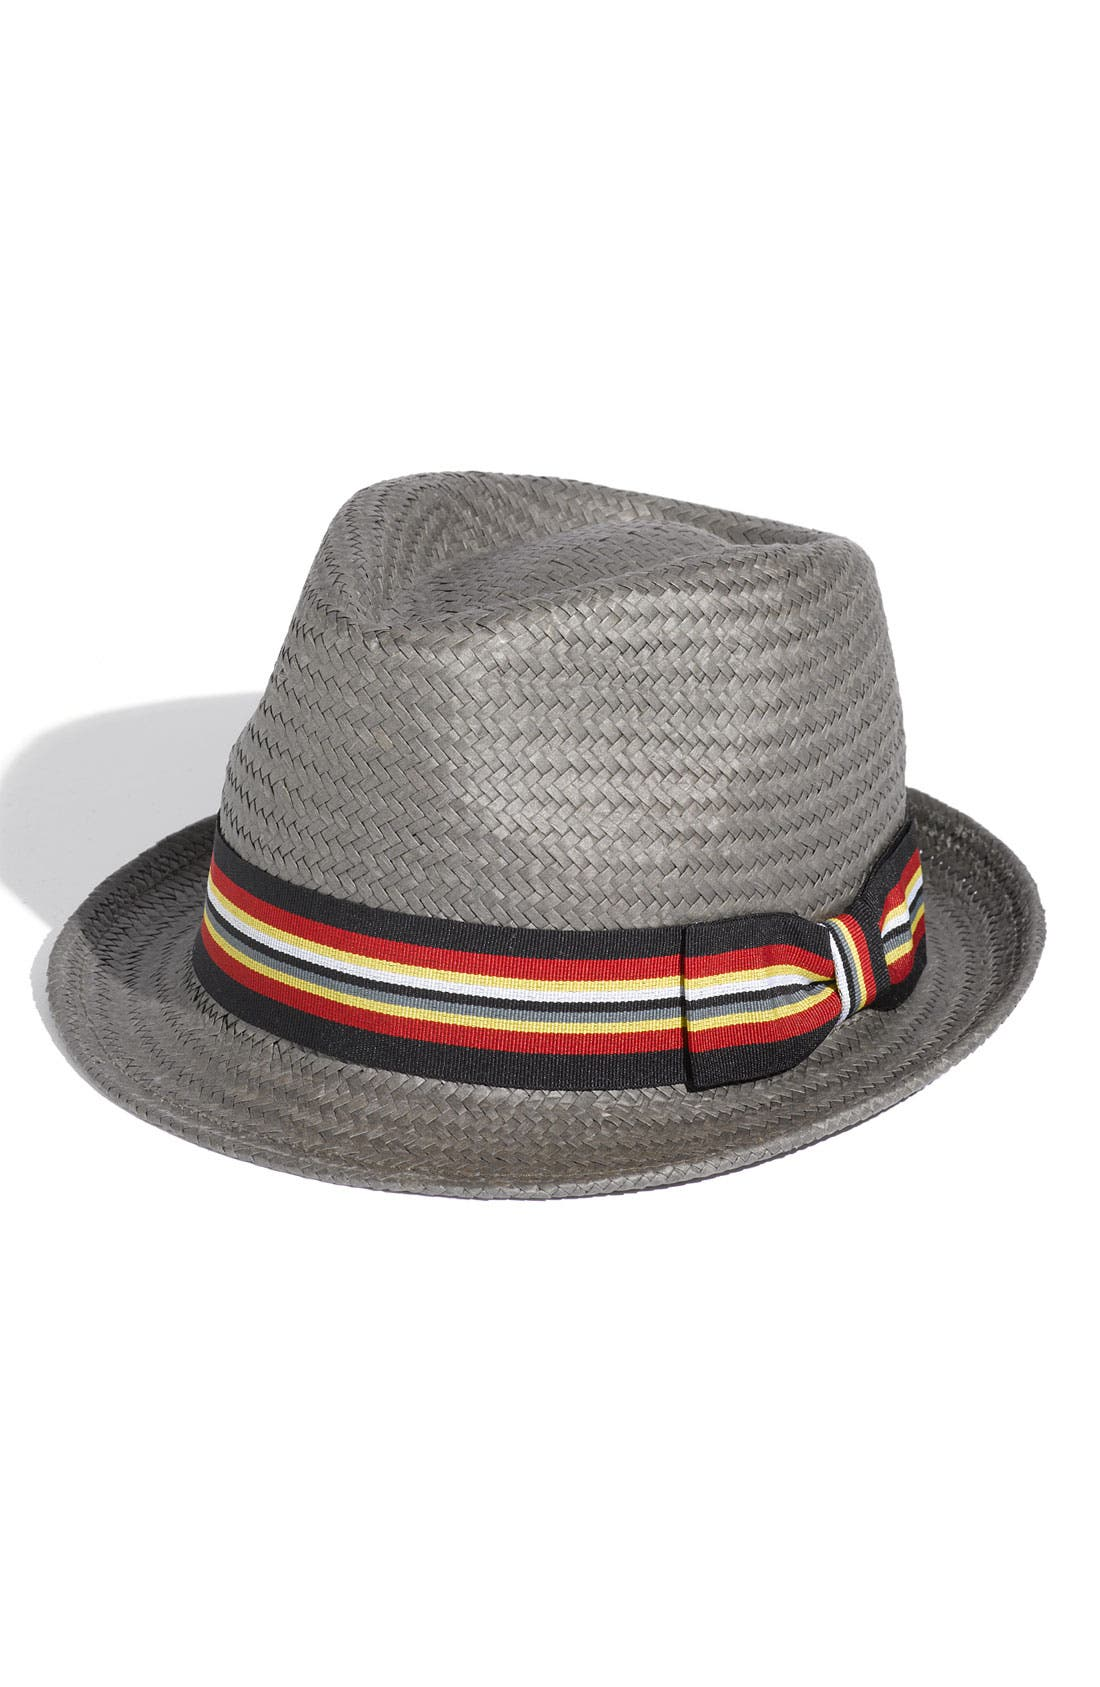 Paper Straw Fedora,                         Main,                         color, Grey